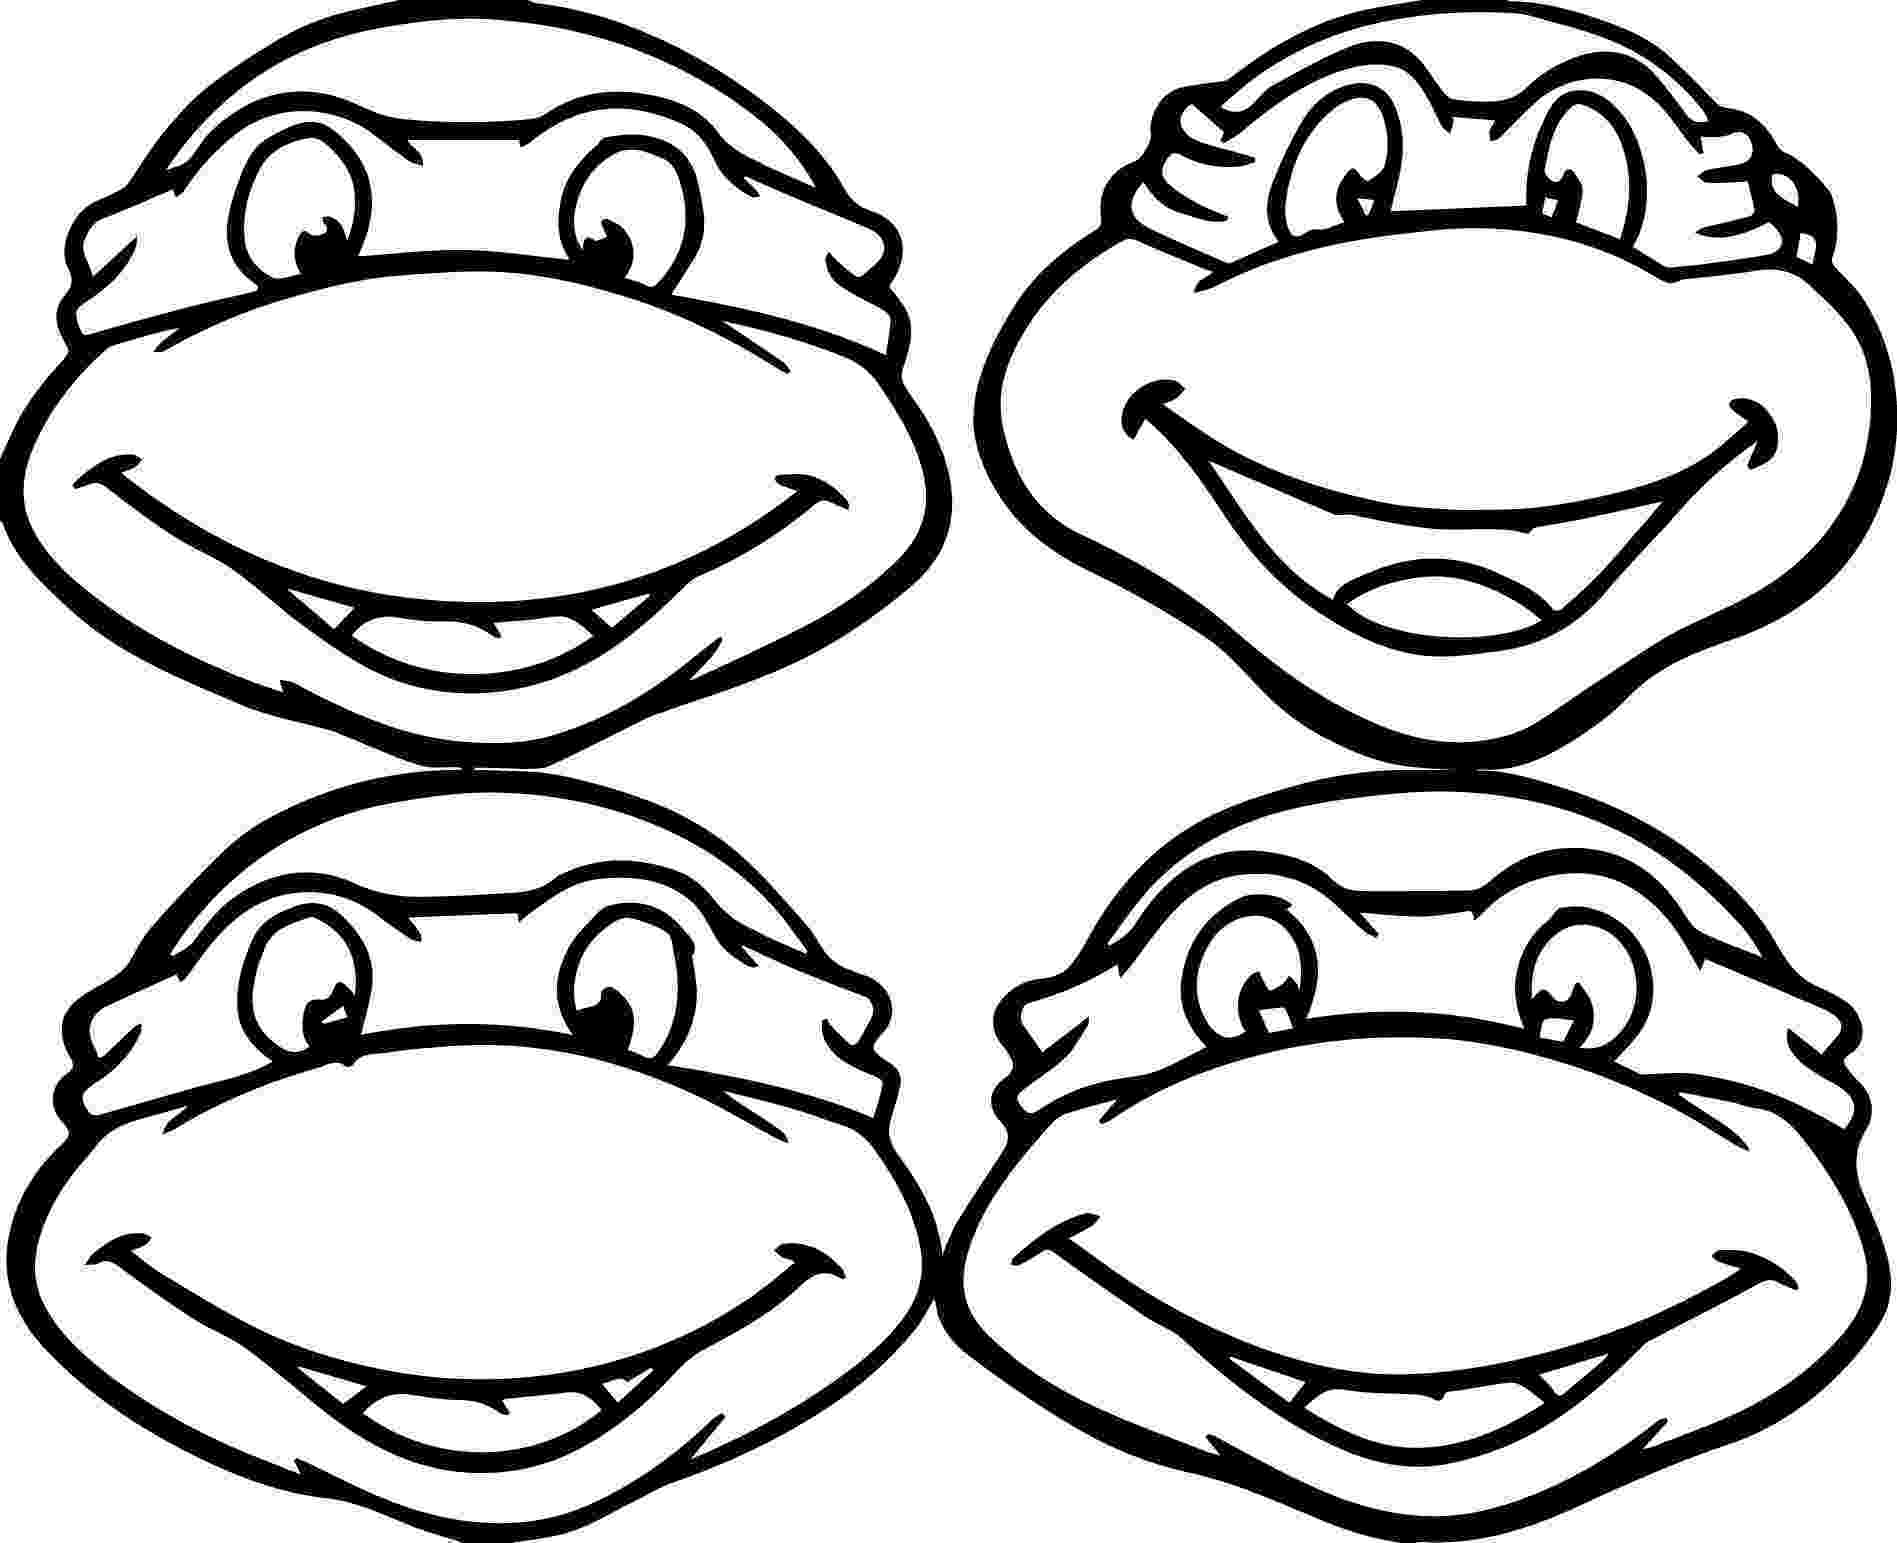 ninja turtles coloring pages for kids 136 best images about coloring sheets on pinterest pages for turtles coloring ninja kids